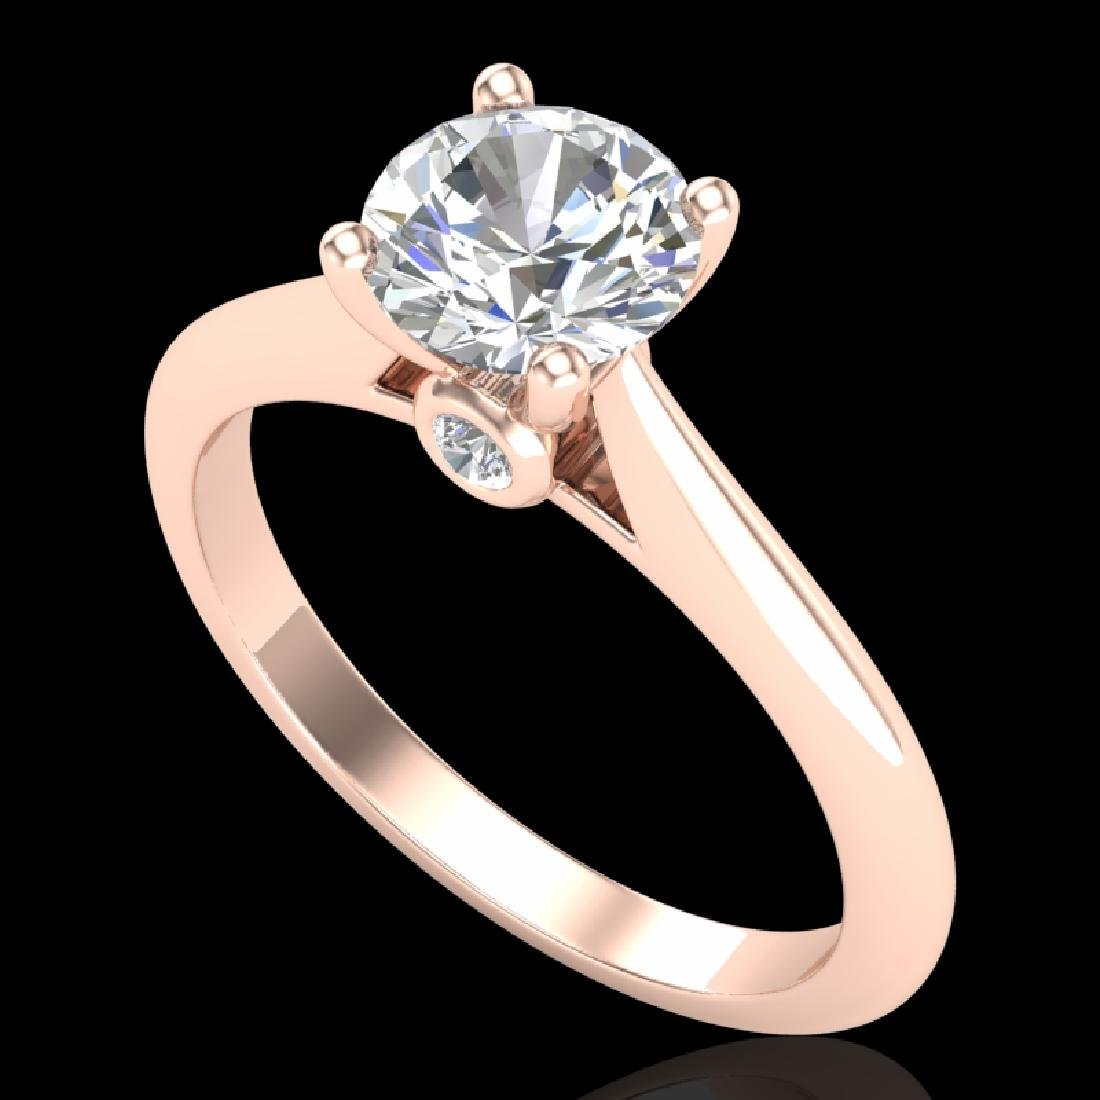 1.08 CTW VS/SI Diamond Solitaire Art Deco Ring 18K Rose